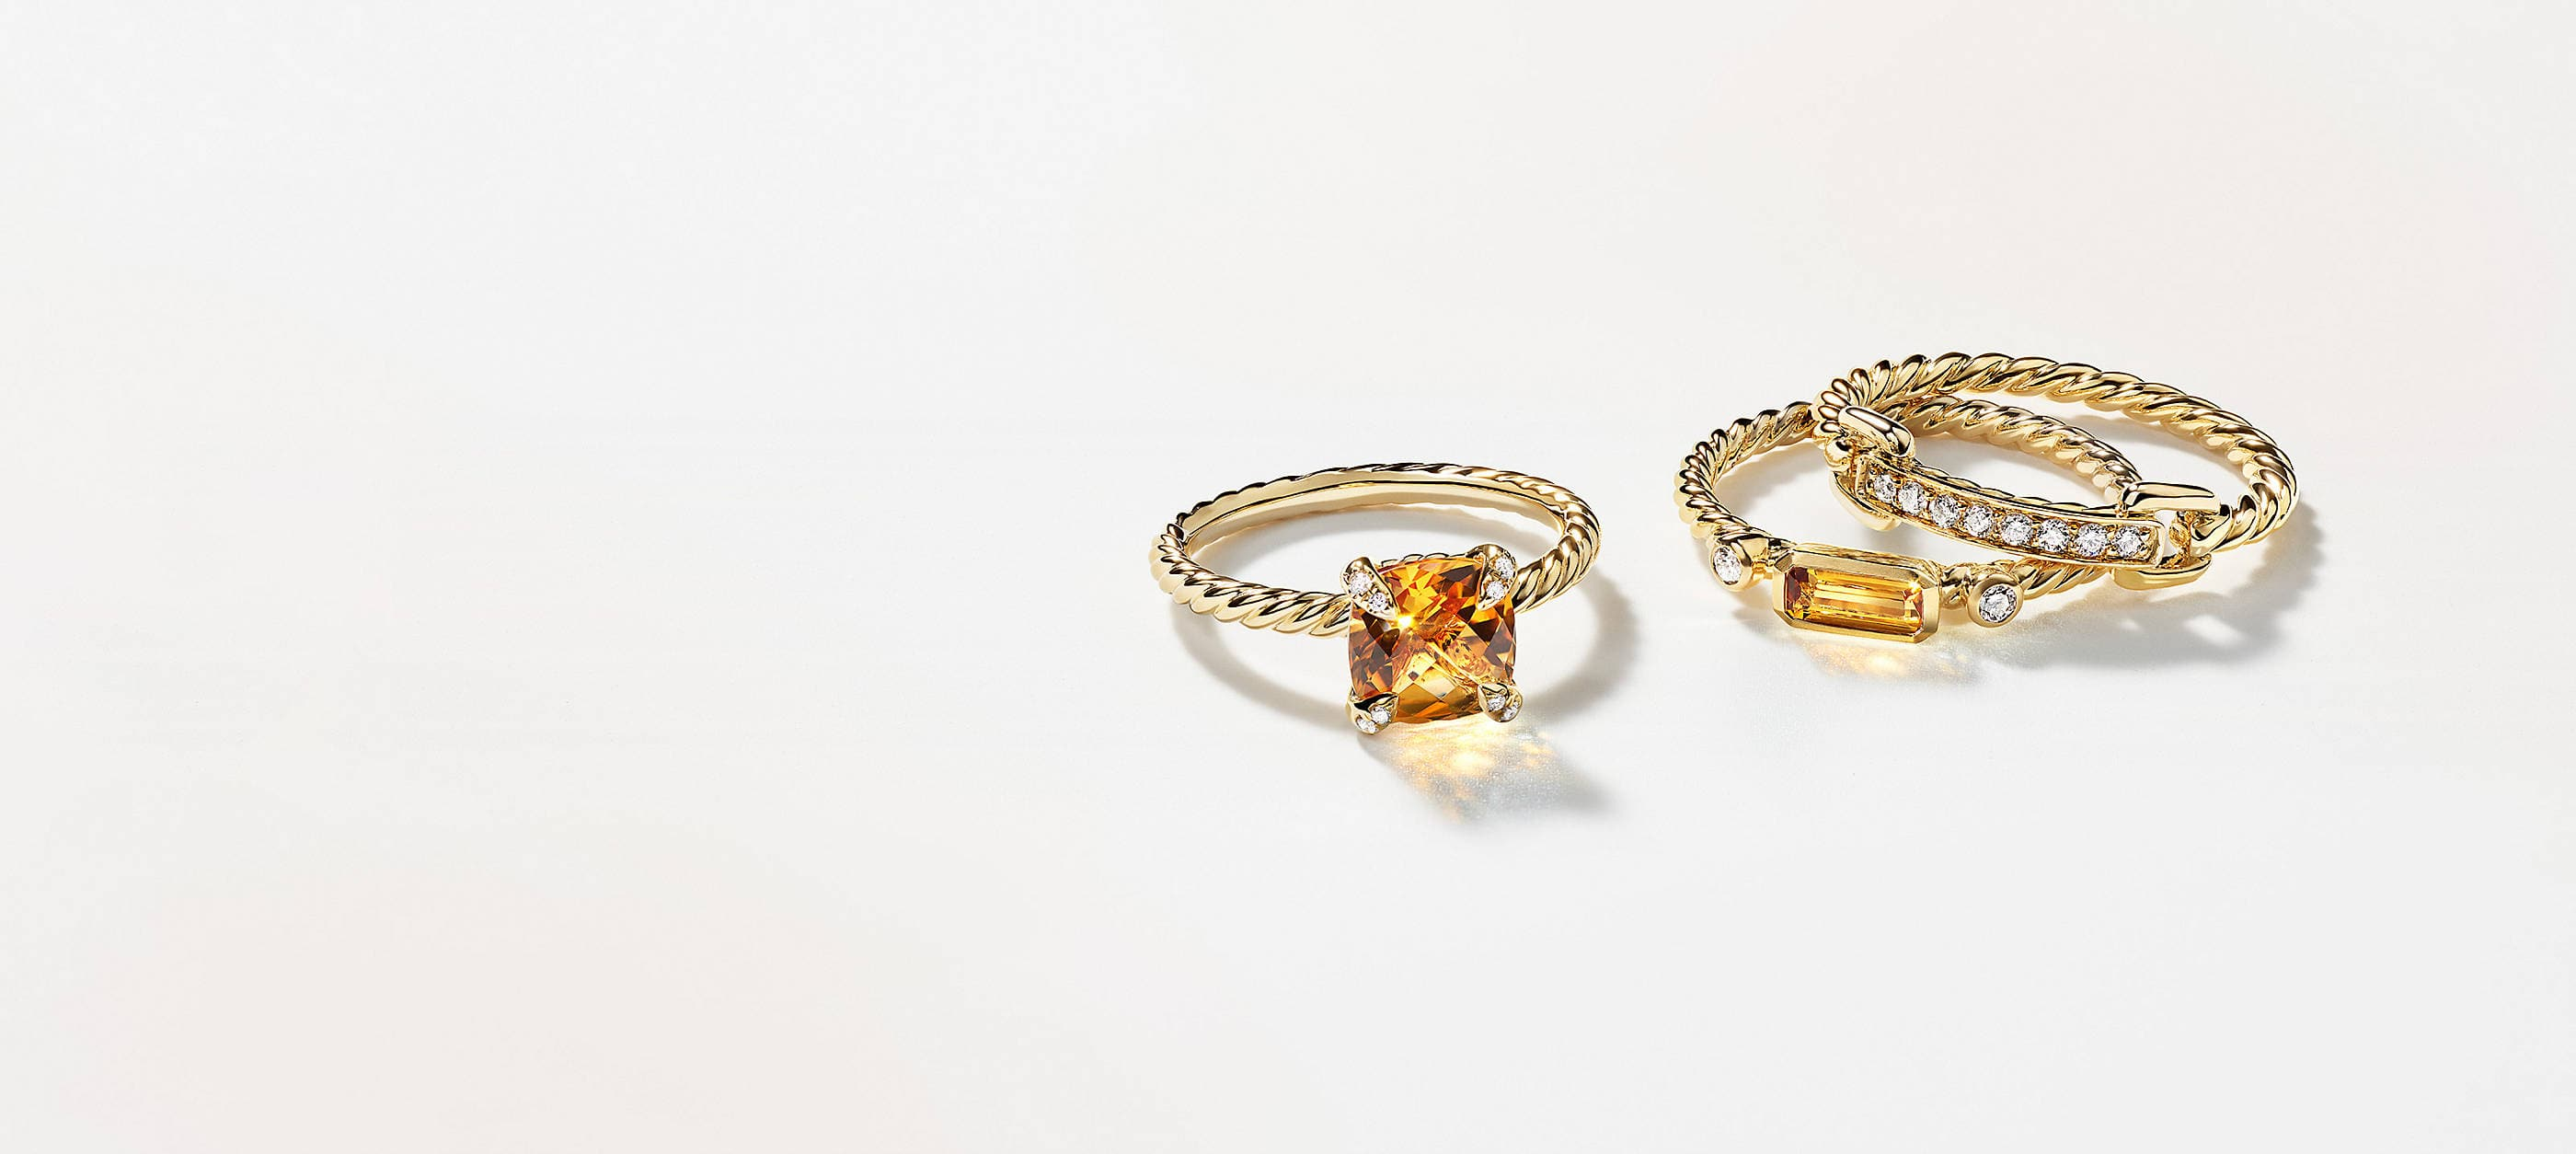 Three David Yurman rings scattered in two stacks on a white background with soft shadows. The women's jewelry is crafted from 18K yellow gold with pavé diamonds. Two rings feature cushion- or emerald-cut citrine center stones.